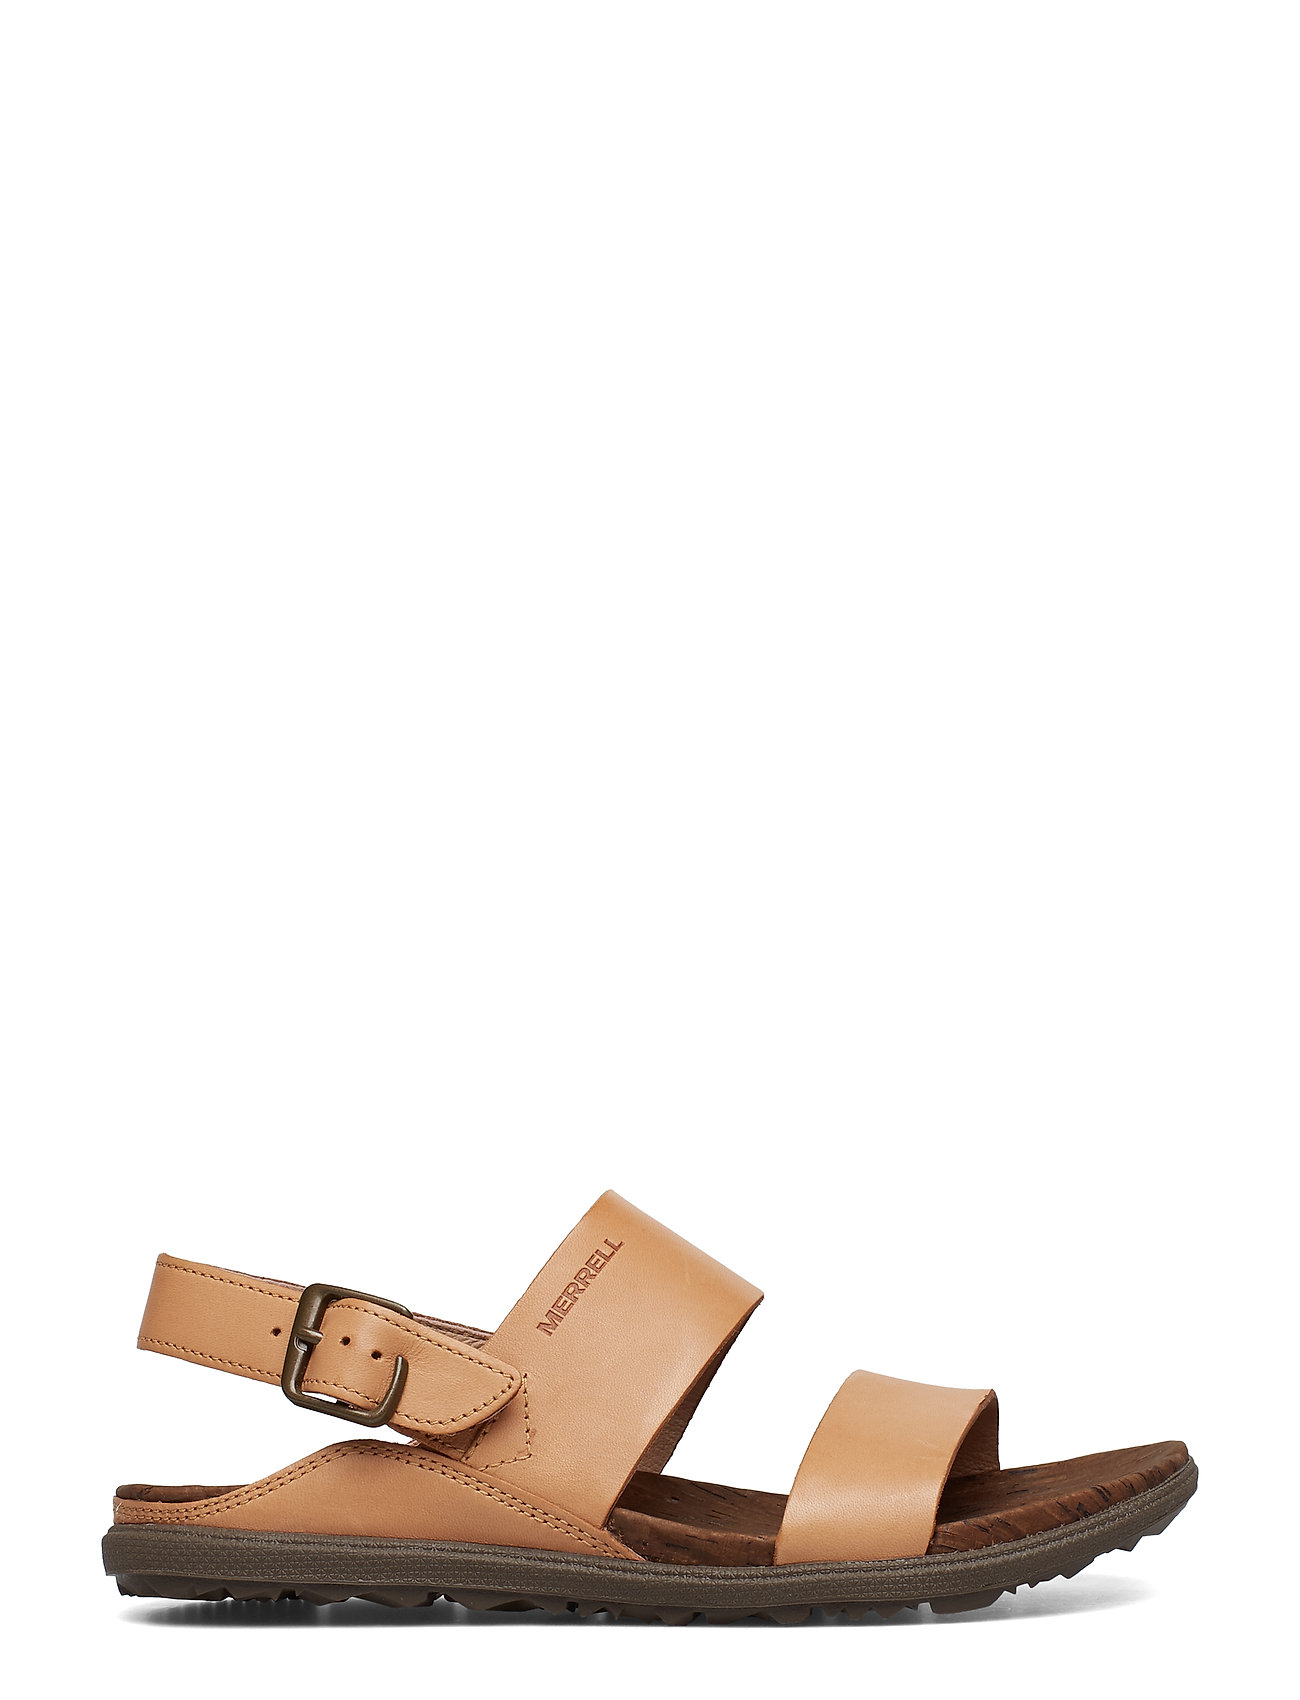 Around Town Luxe Backstrap Natural Tan